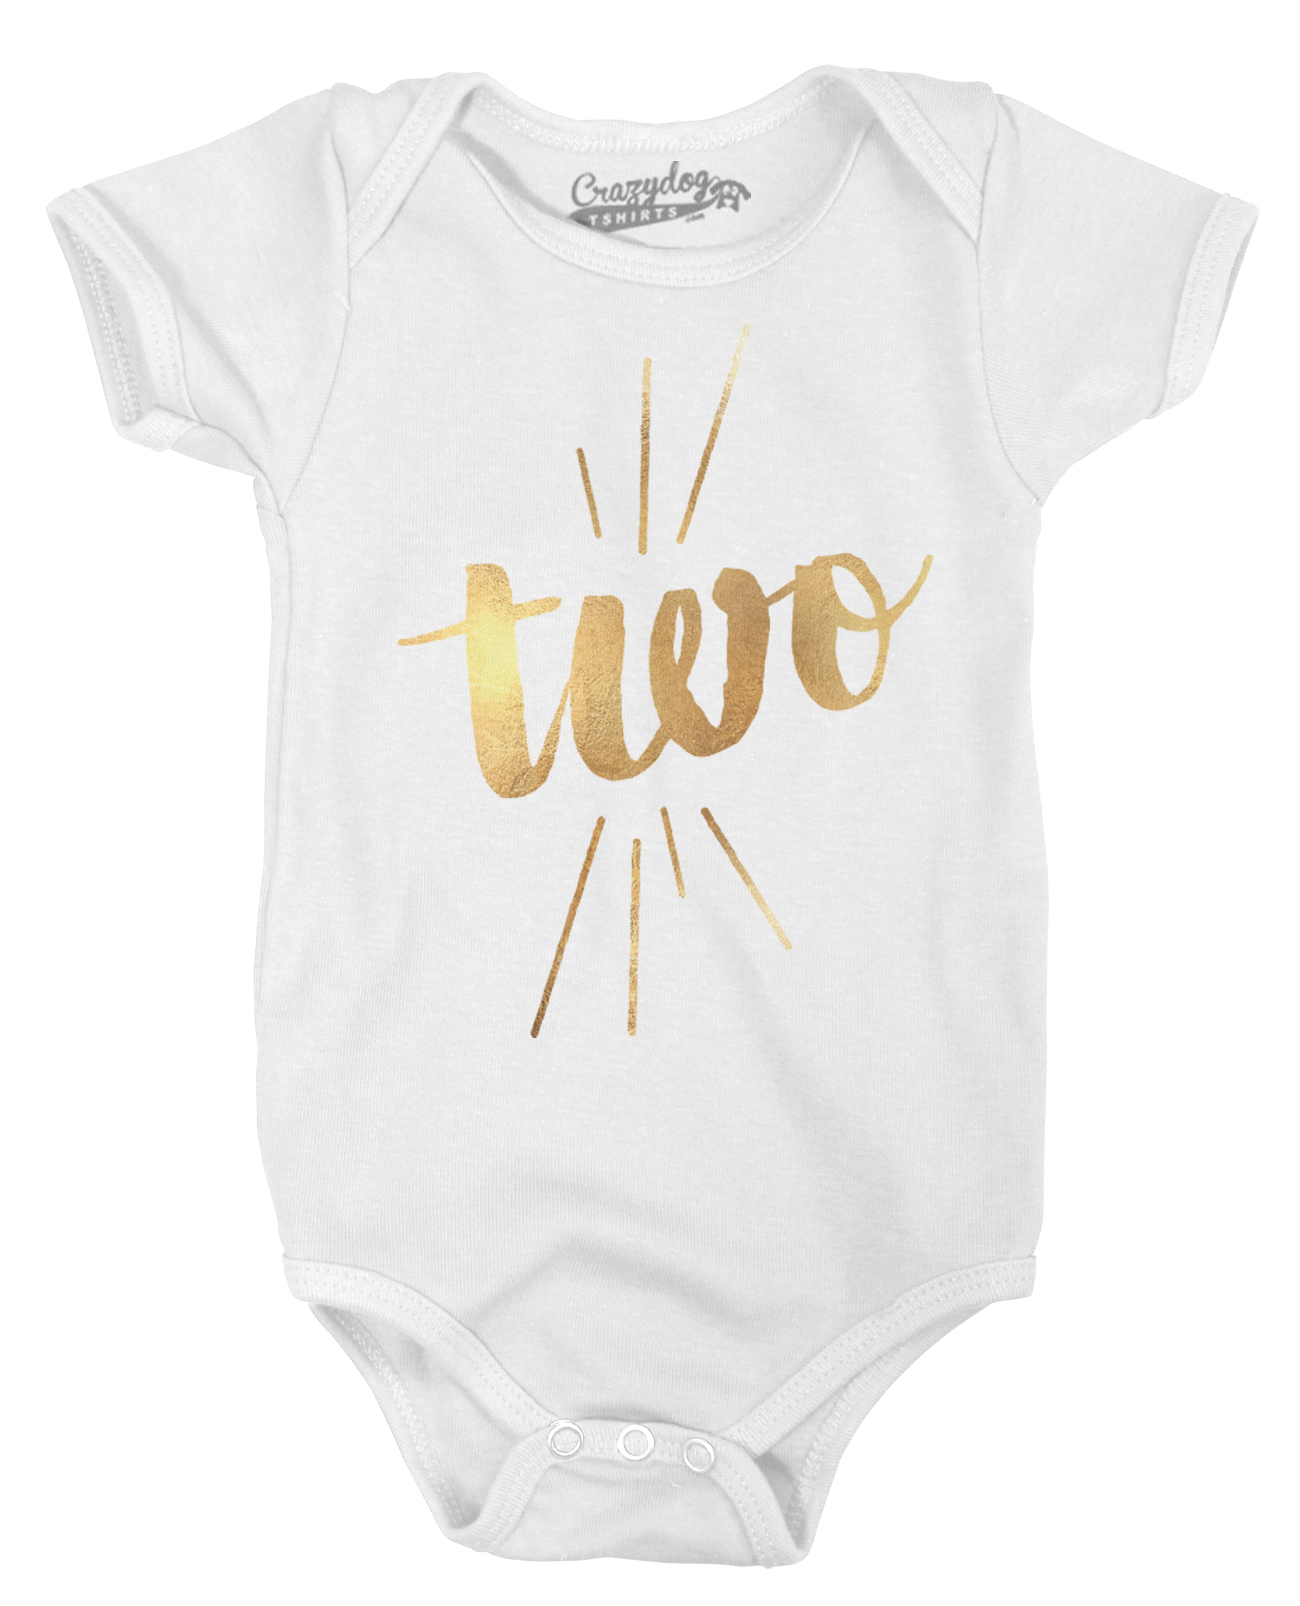 Baby Two Years Old Gold Shimmer Cute Birthday Celebration Infant Creeper Bodysuit